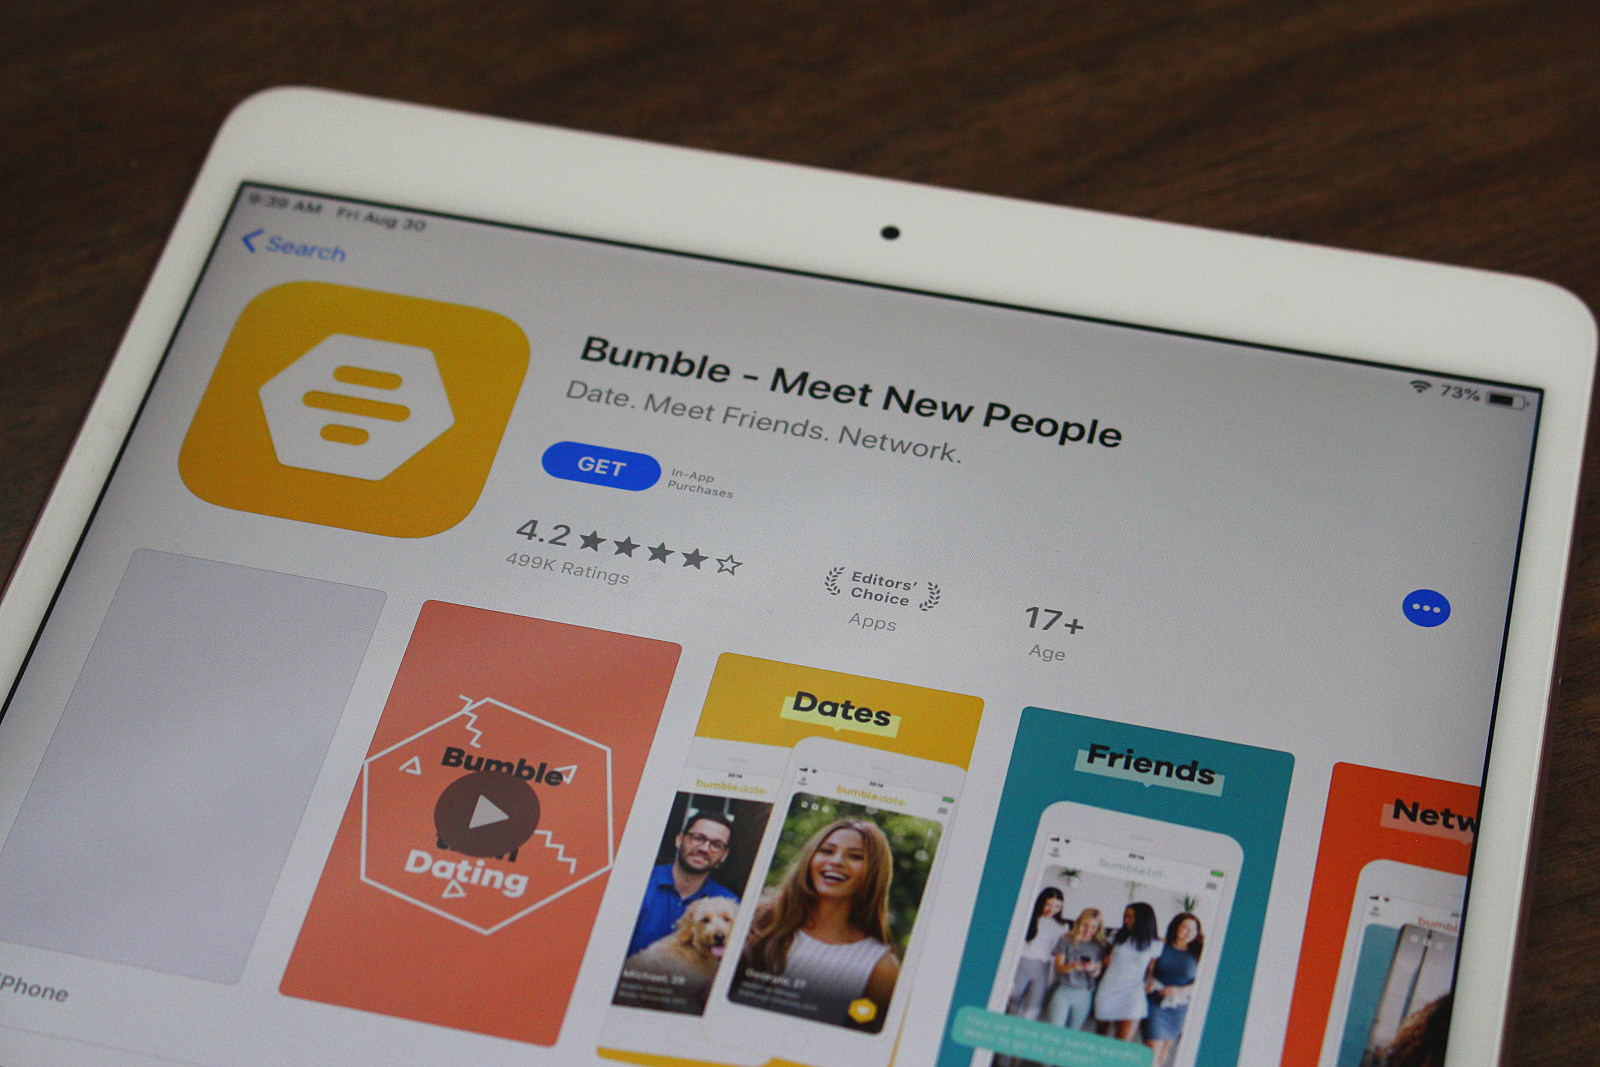 Down dating app store